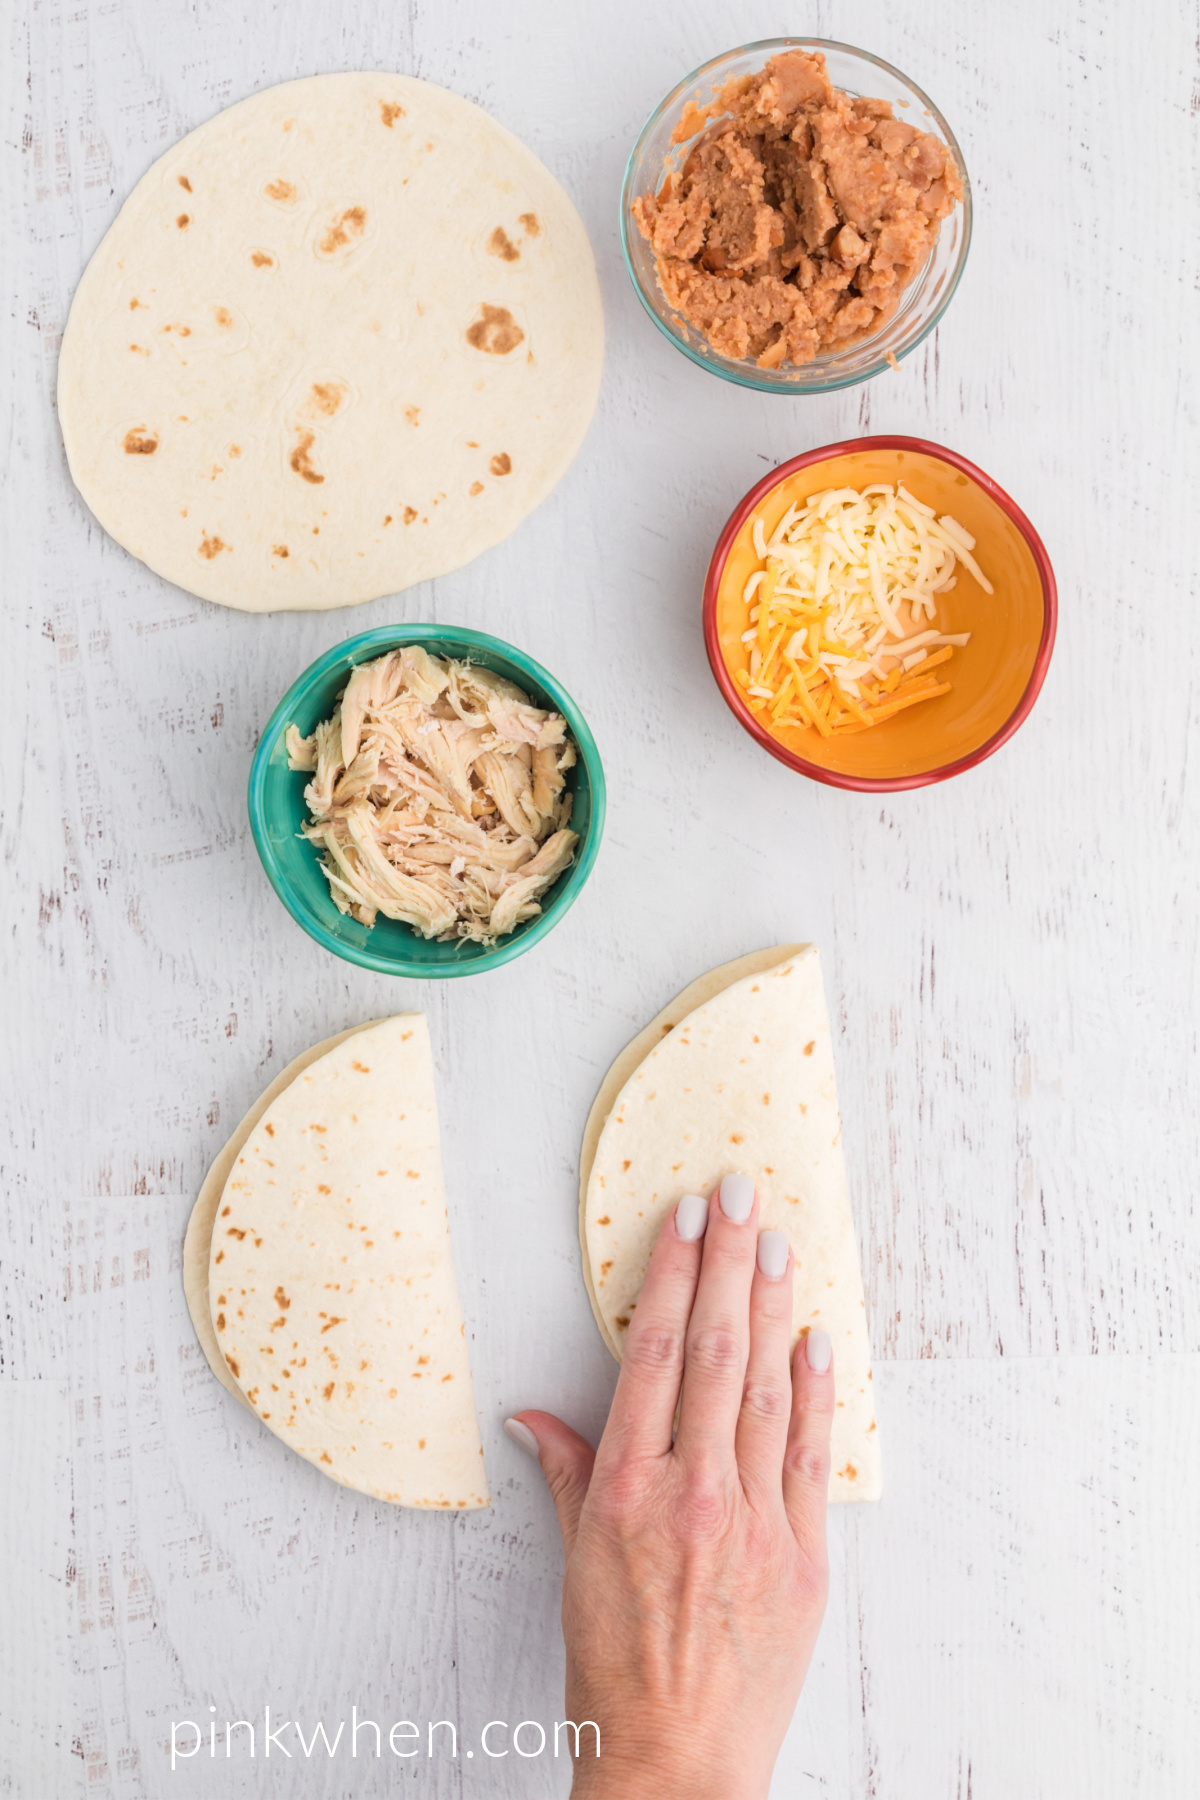 Hand folding over quesadillas before placing them into the air fryer.